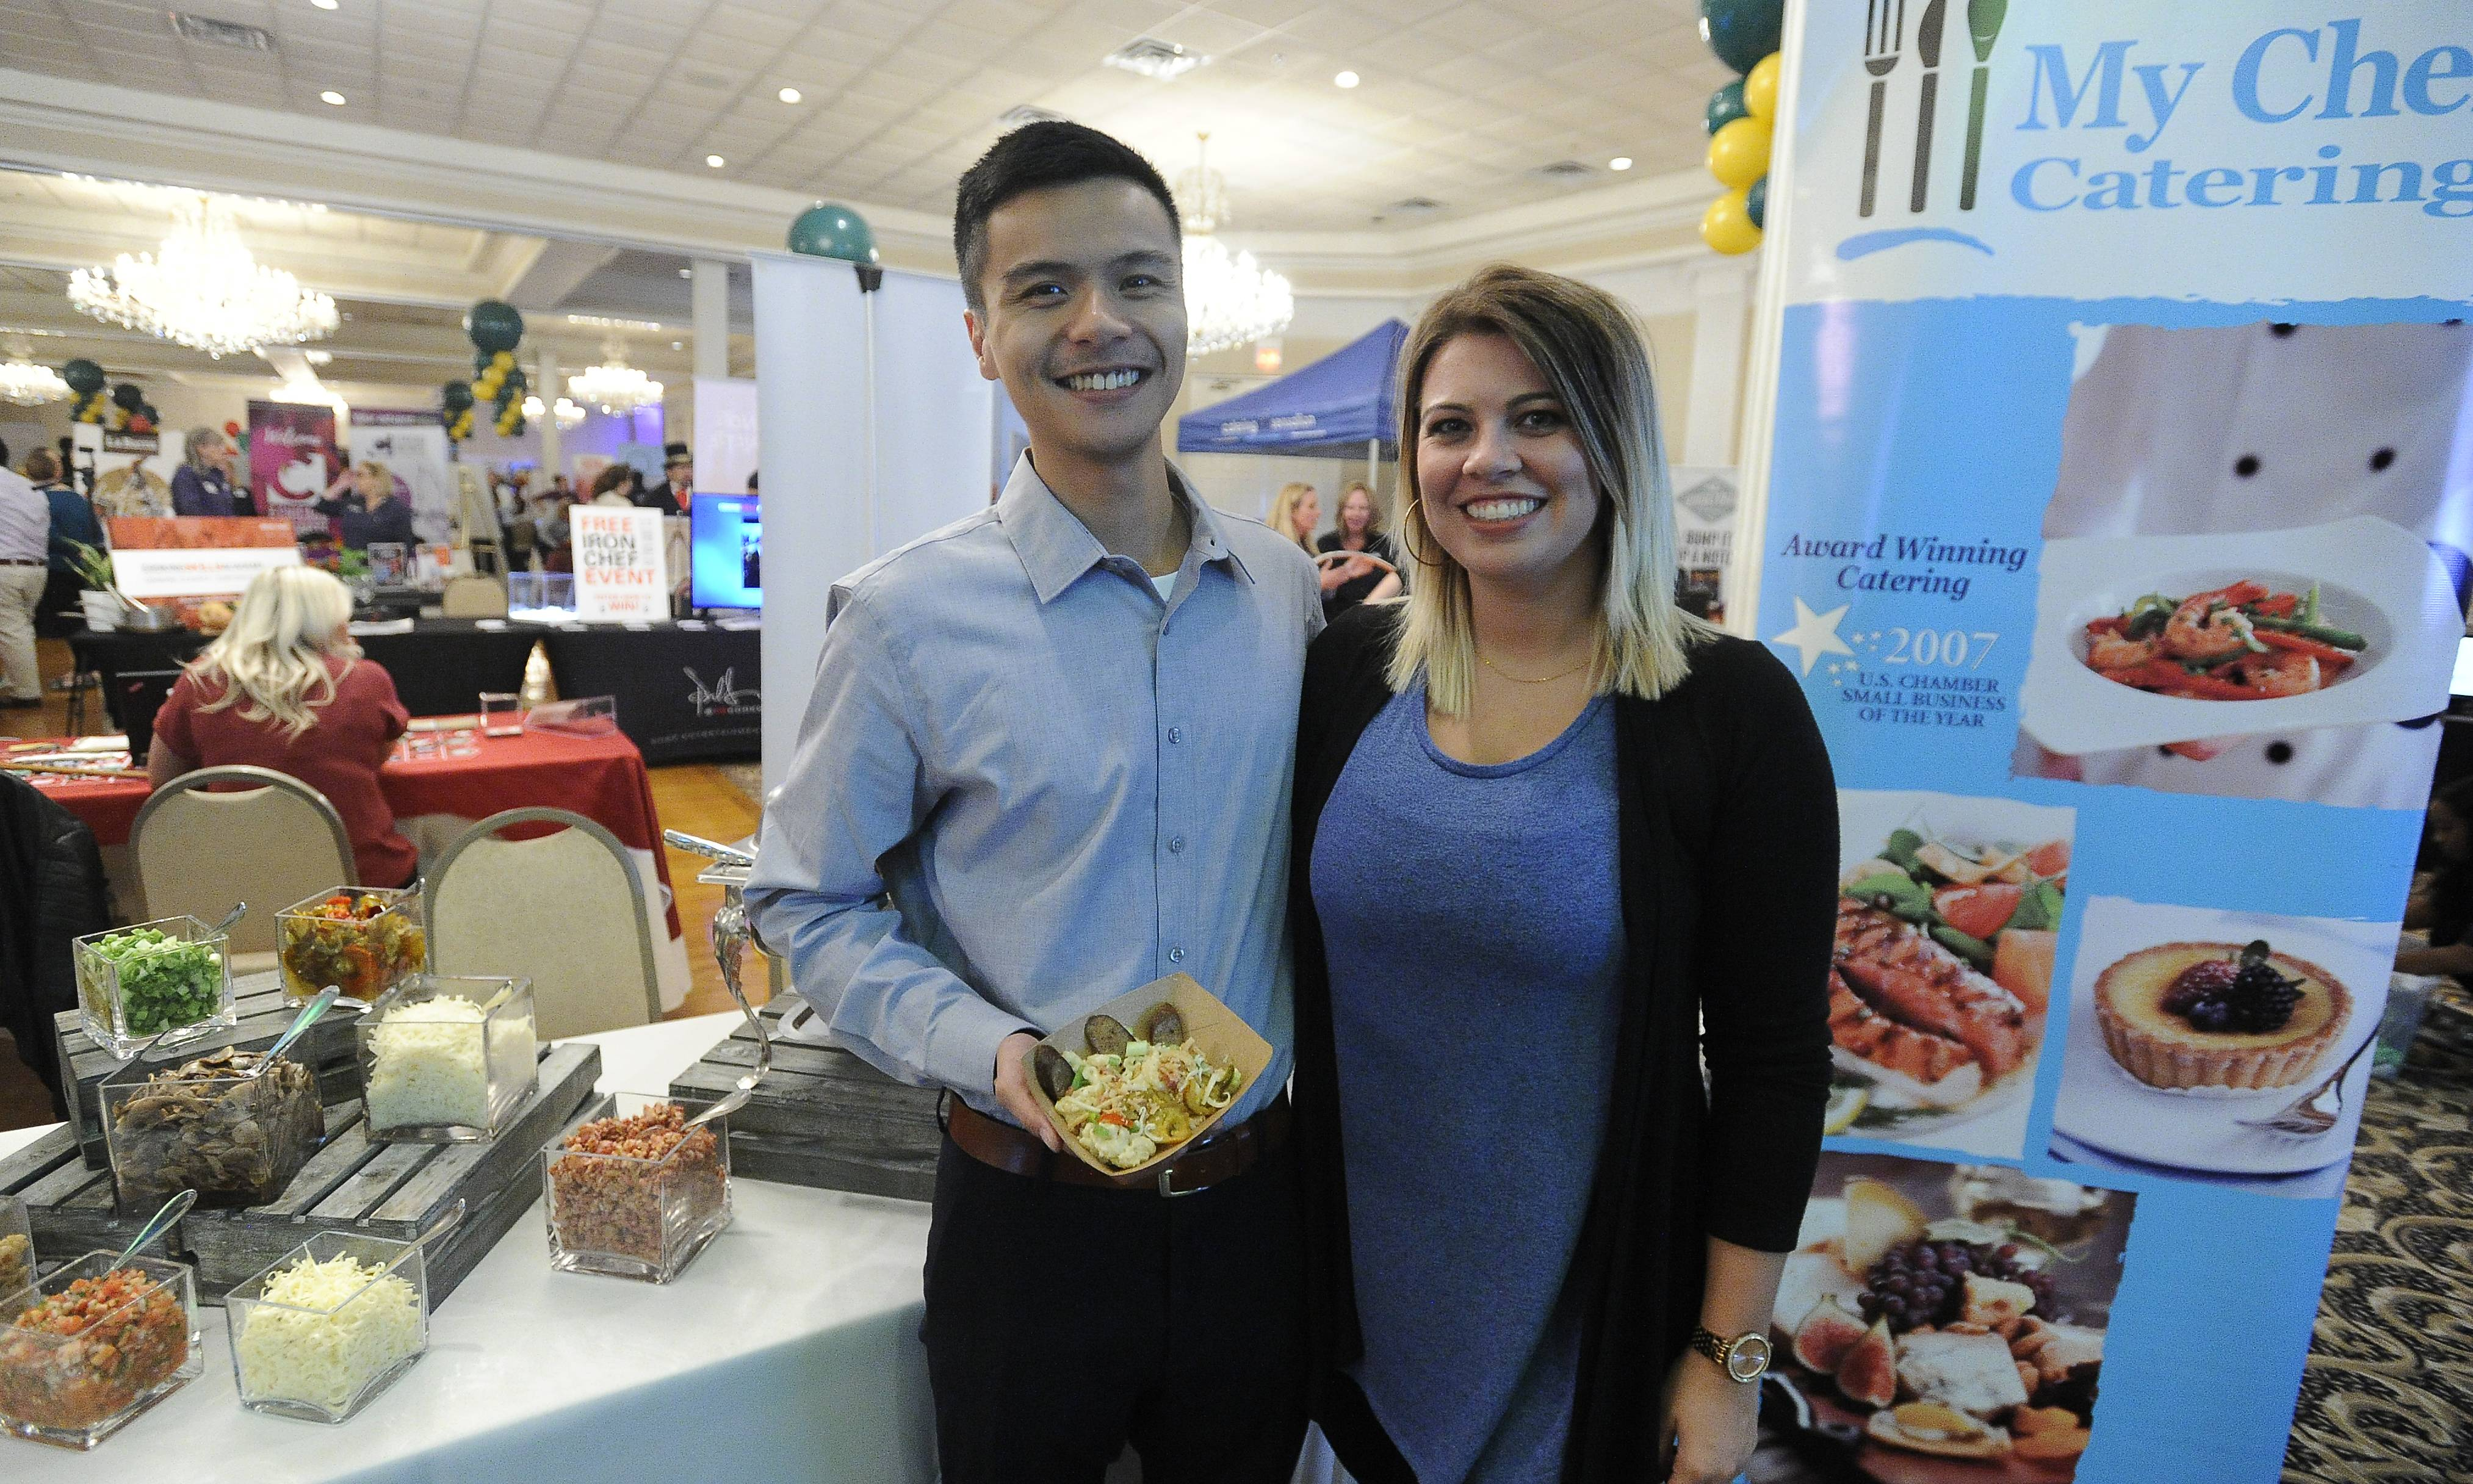 Brittany Wallin with Waldo Castro of My Chef from Naperville took part in the hospitality expo Thursday.